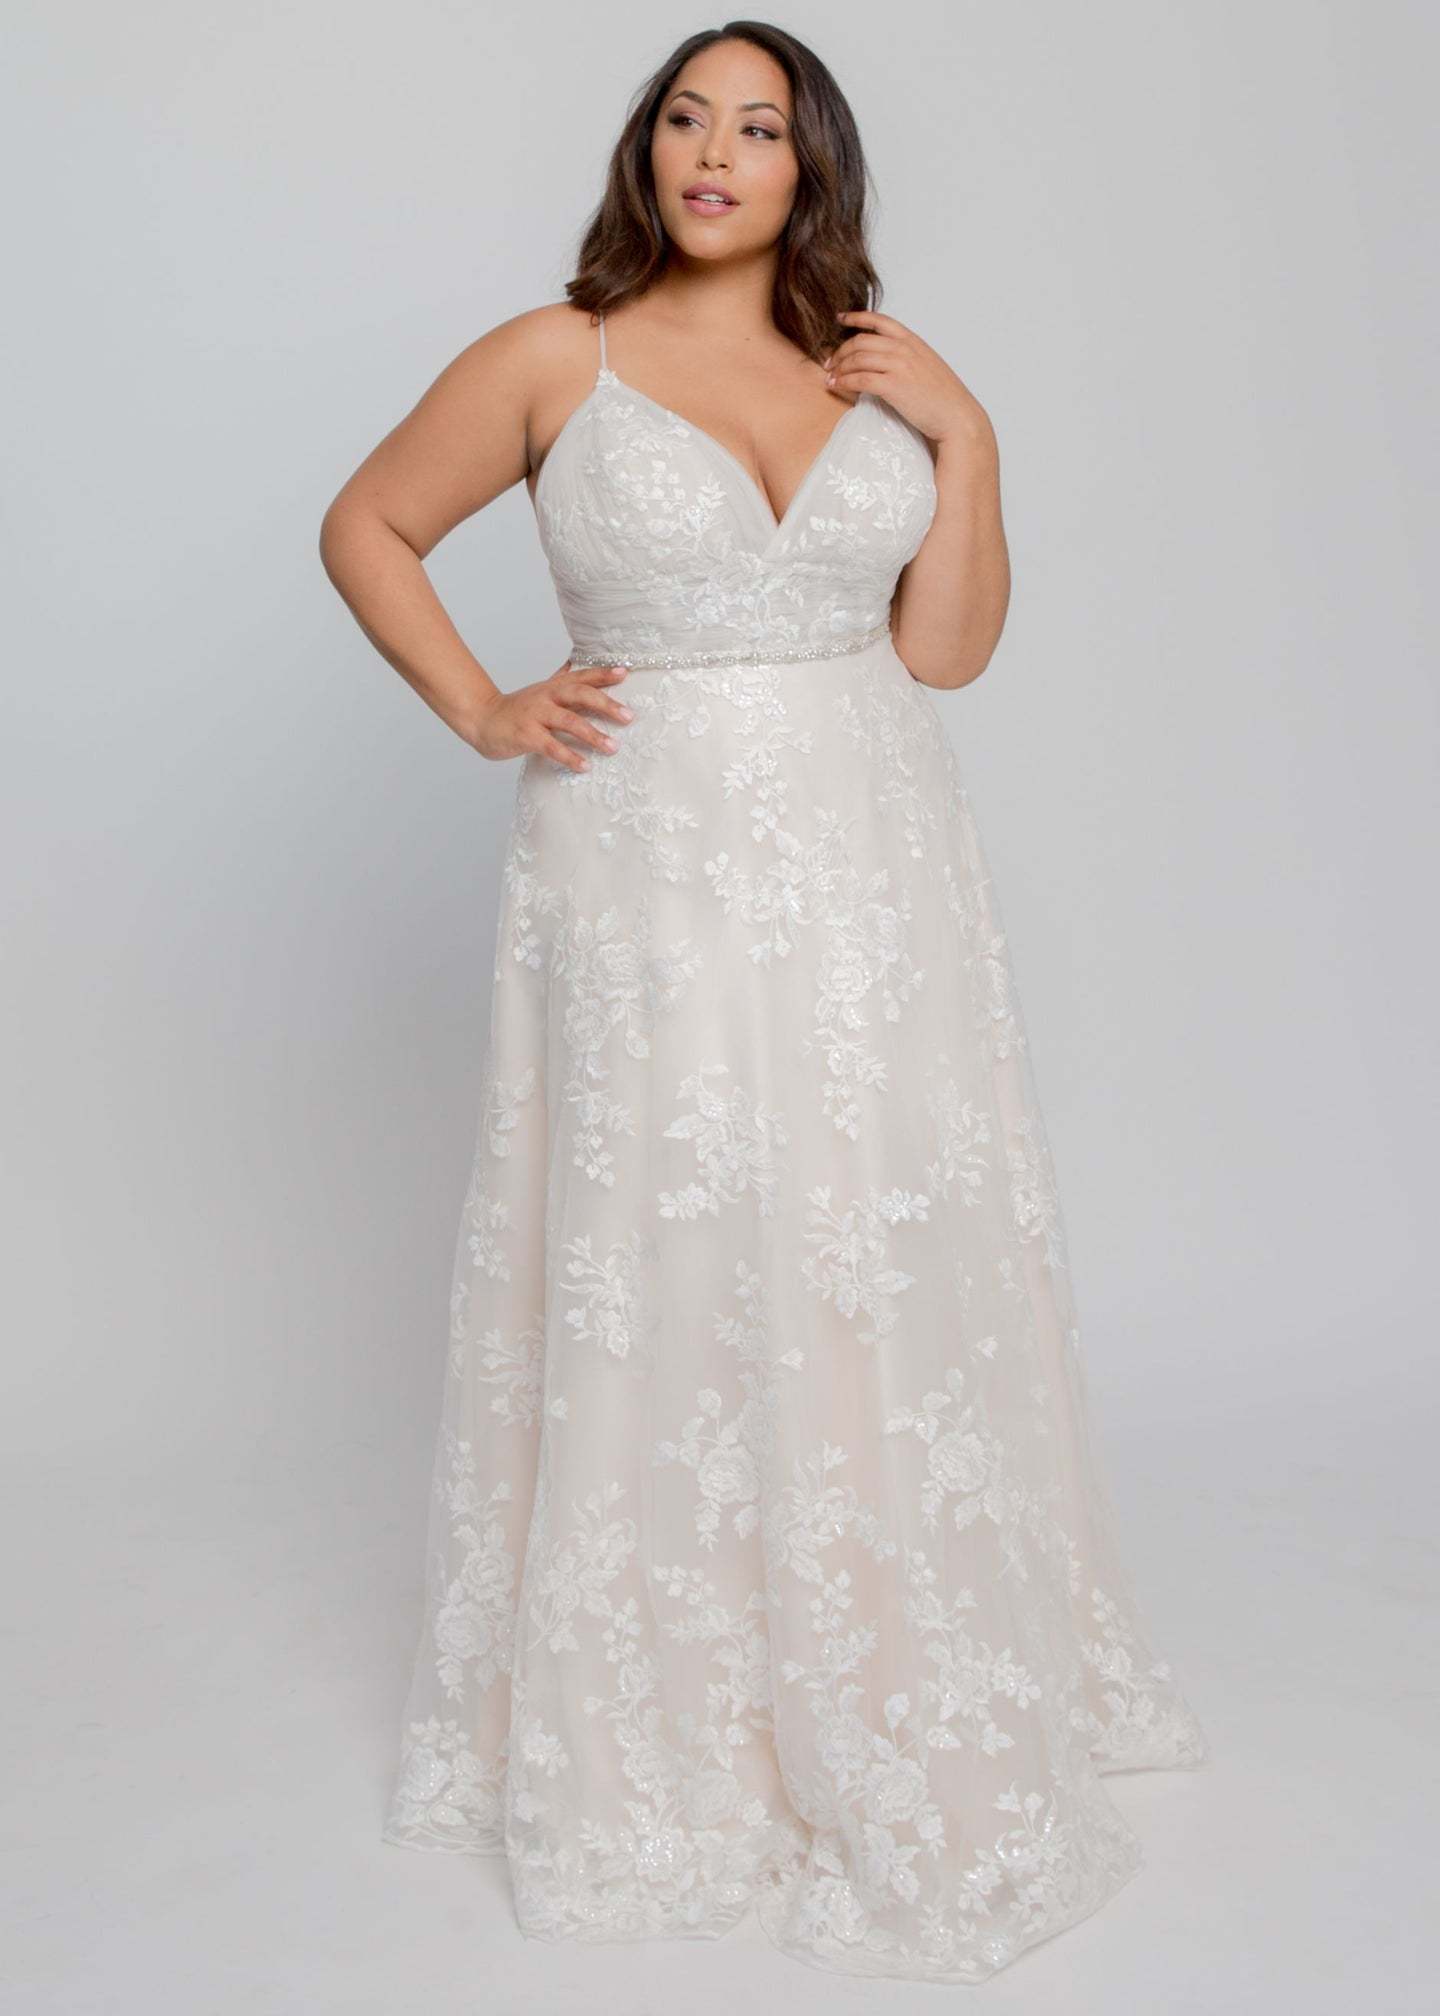 Gorgeous bridal gowns for all body shapes: plus size, curvy, or petite brides. Try on our wedding dresses at home. Size 0-30. Comfortable. Convenient. Fun. Lace or satin. Mermaid or A-line.  This gown features enchanting lace with a sultry V neckline and flattering A line skirt. This lace is soft to the touch and features lovely roses covering the dress from neckline to hem. Delicate, nude lining brings out details of the soft ivory lace that falls beautifully from the waist.